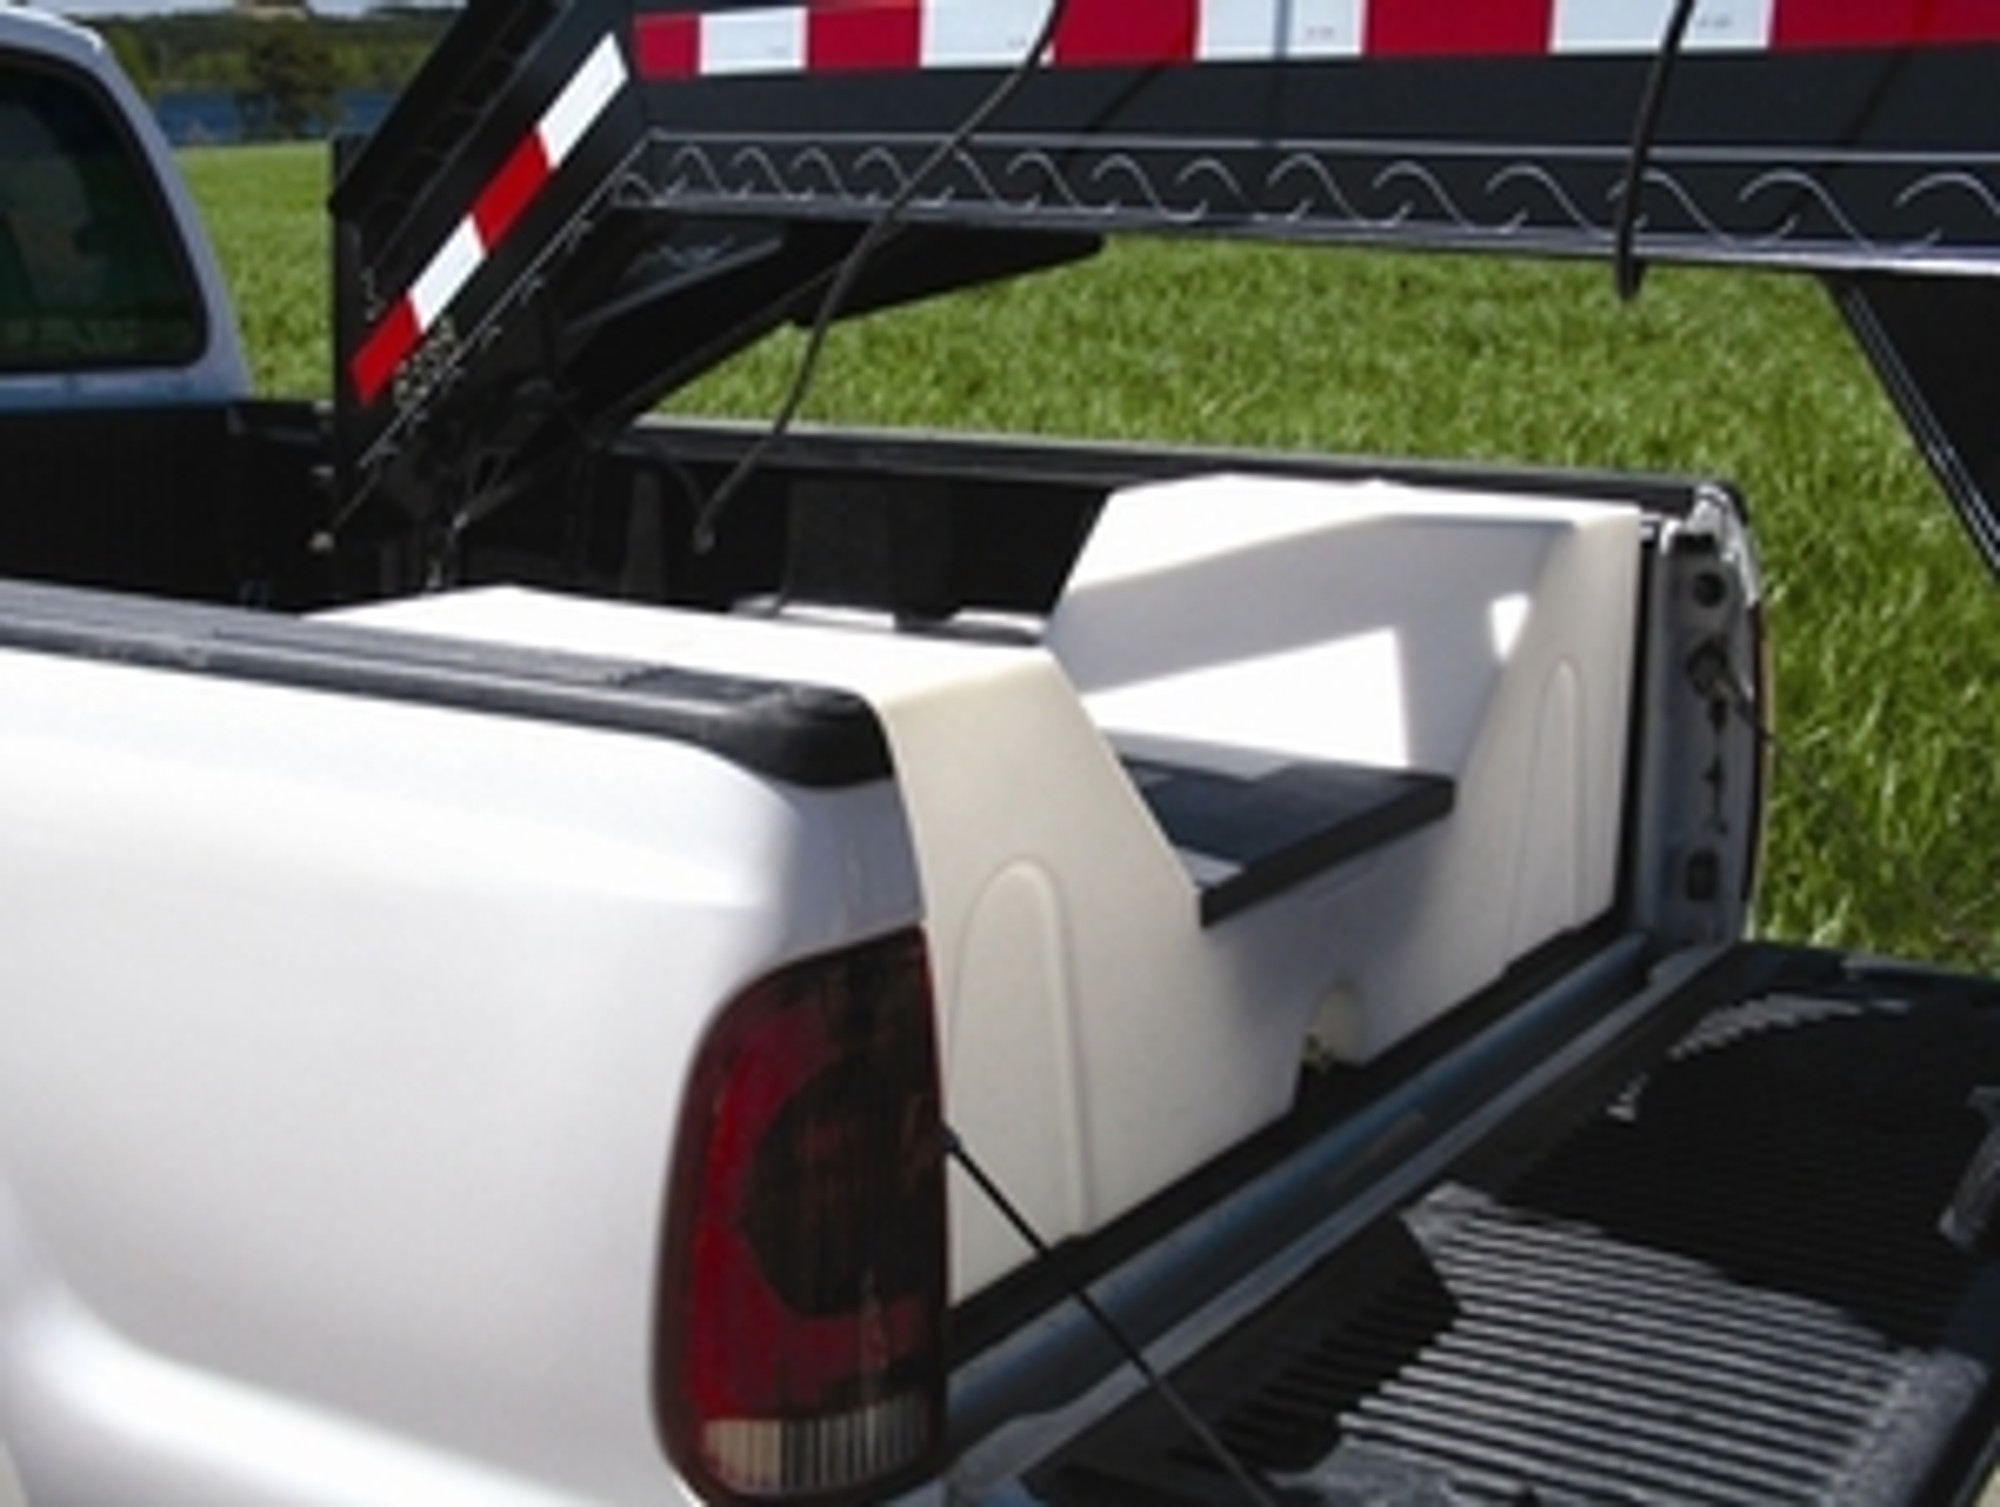 63 GALLON Pickup Truck Bed Water Caddy - High Country Plastics